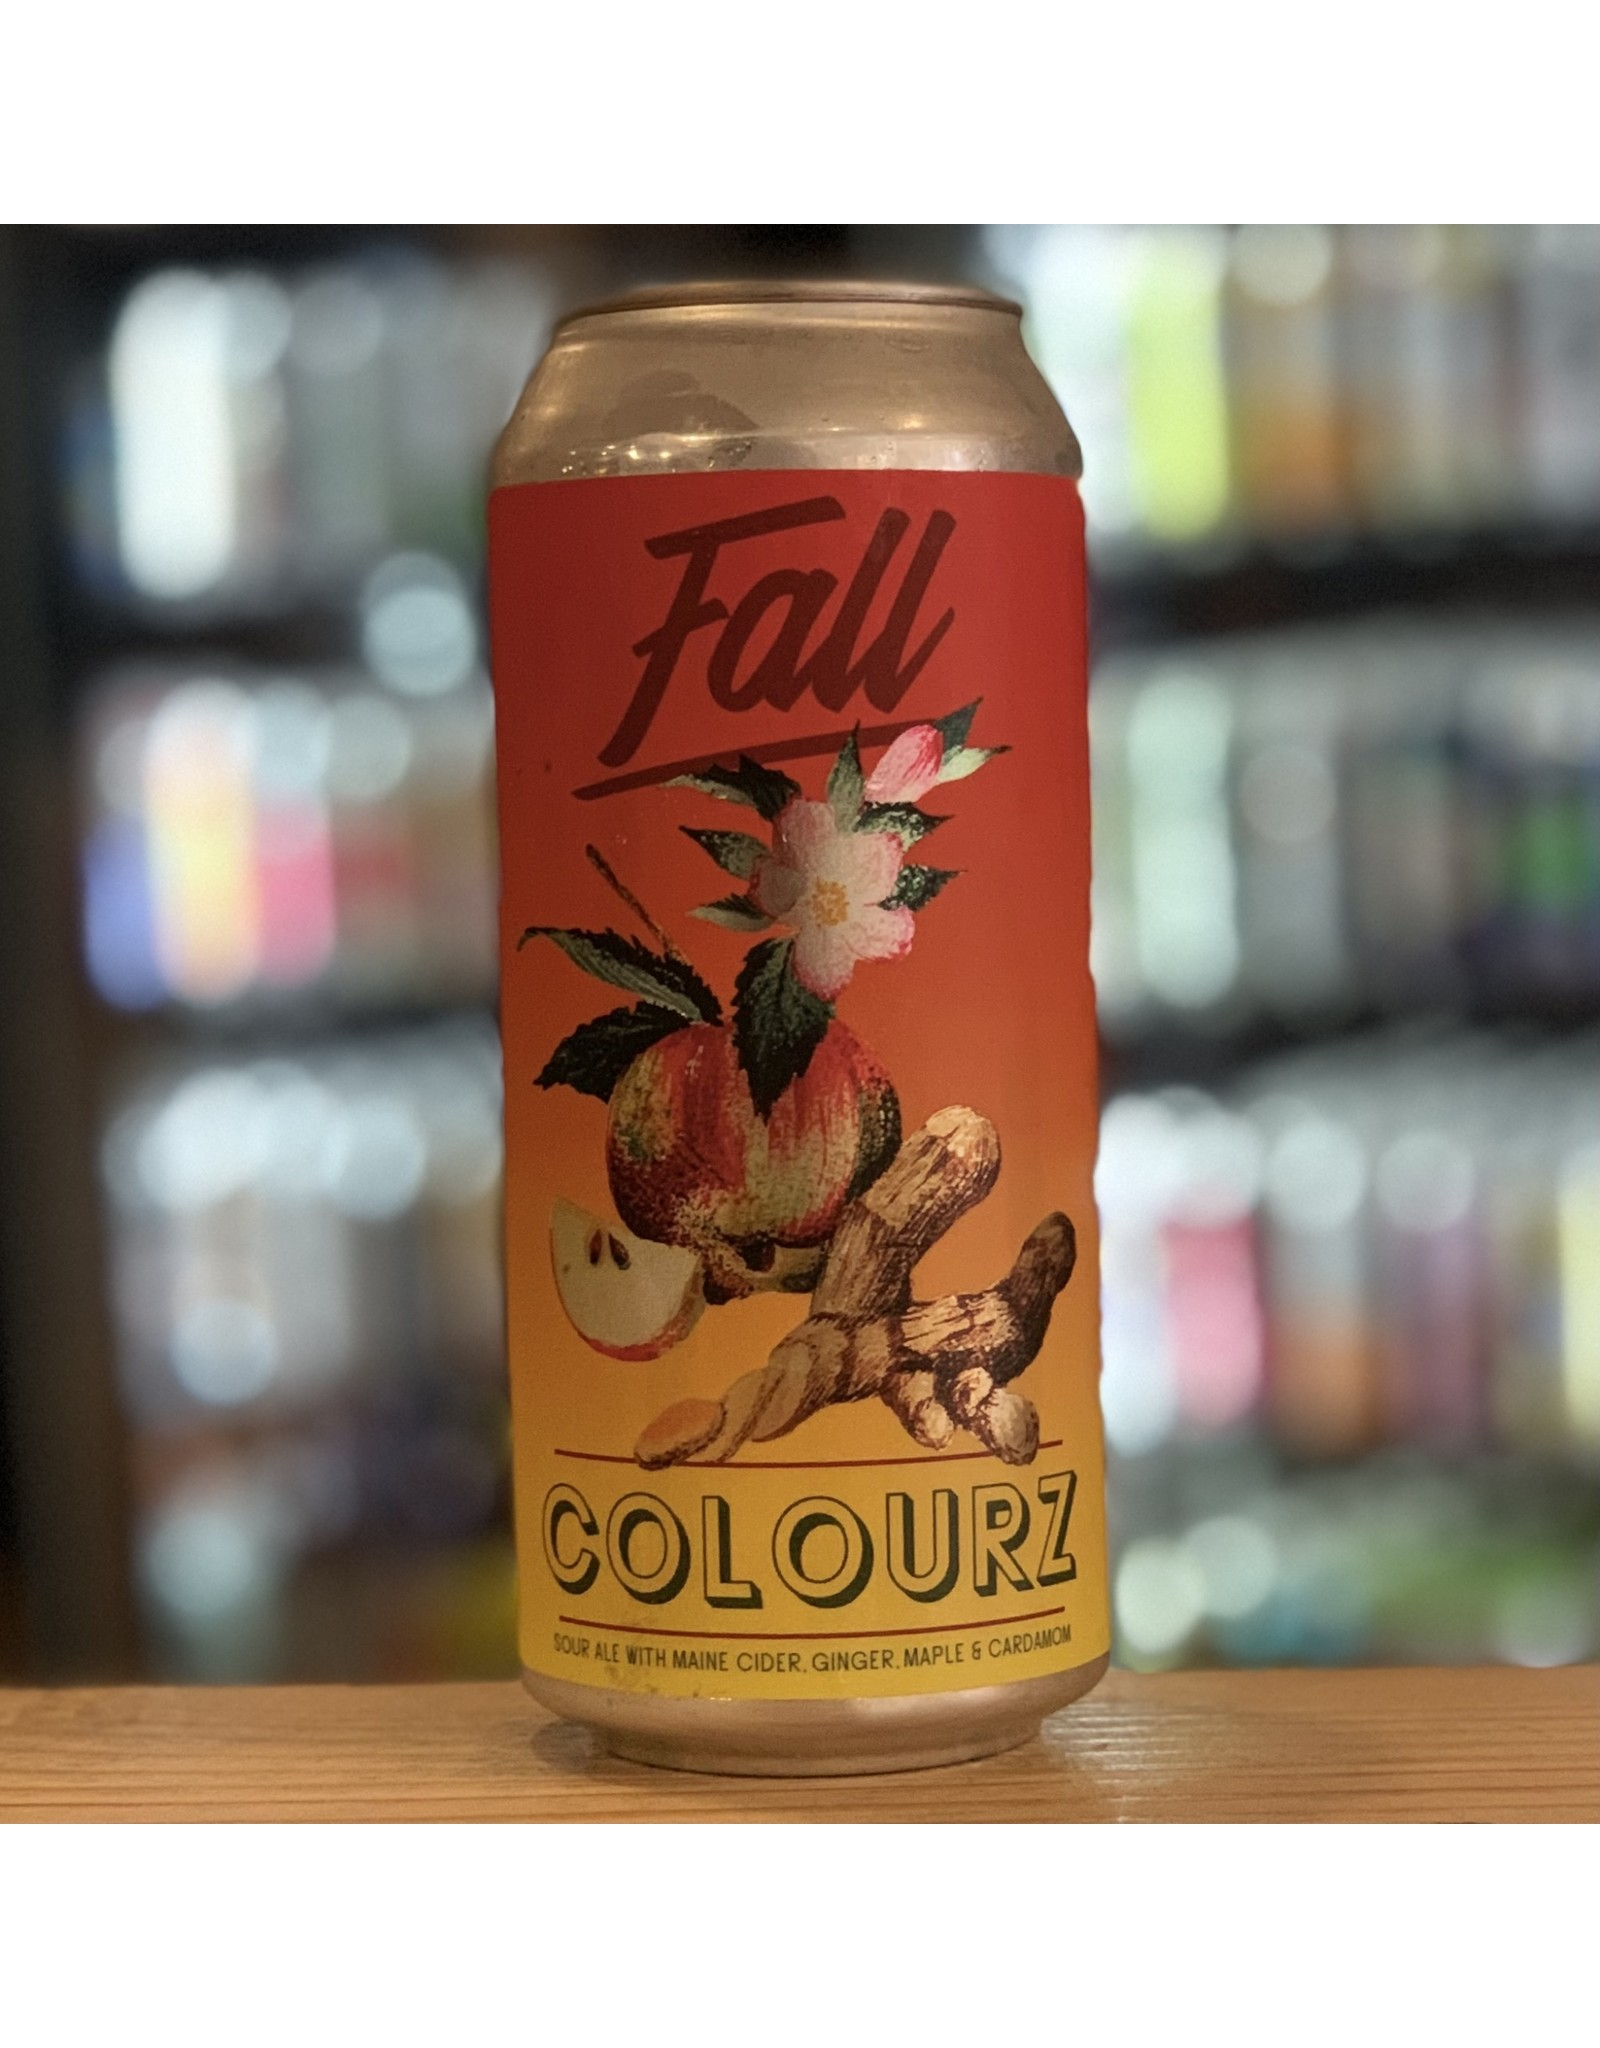 """Sour Bunker Brewing Company """"Fall Colourz"""" Sour Ale w/Maine Cider, Ginger, Maple and Cardamom - Portland, ME"""